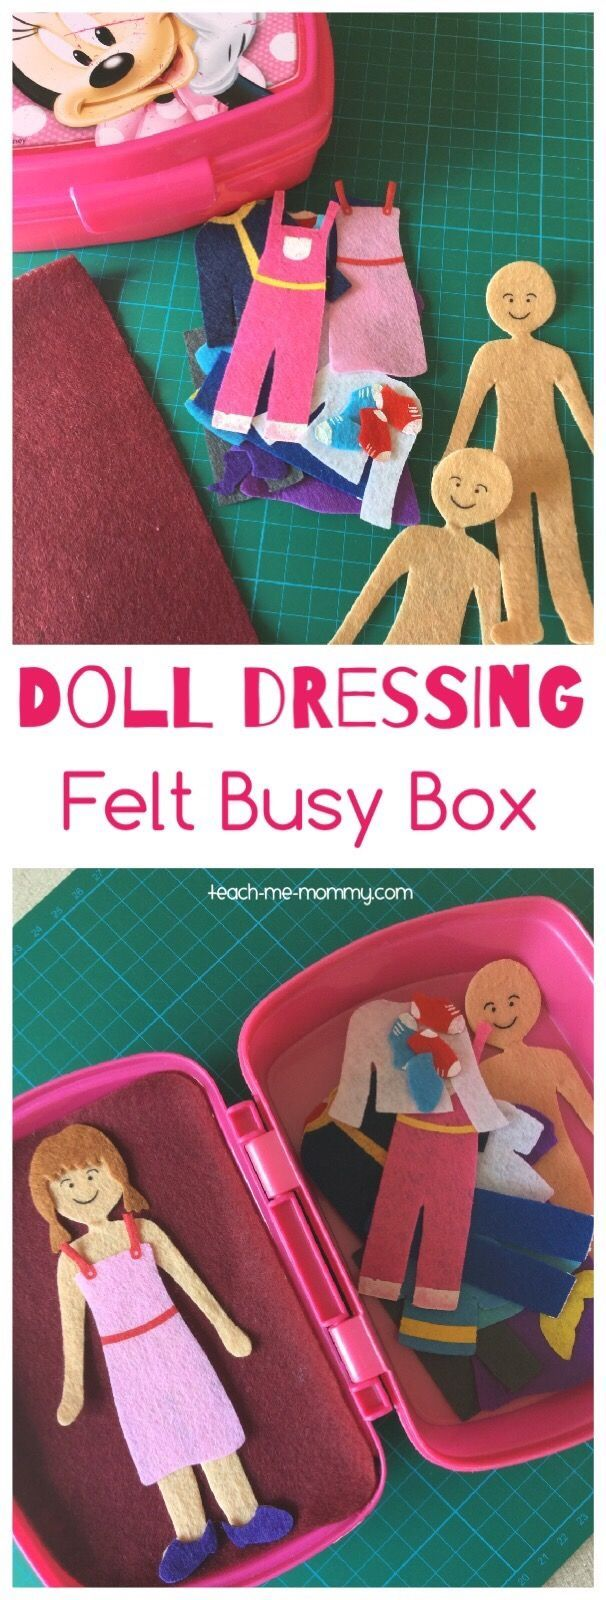 Doll Dressing Felt Busy Box, the easiest busy bag ever!